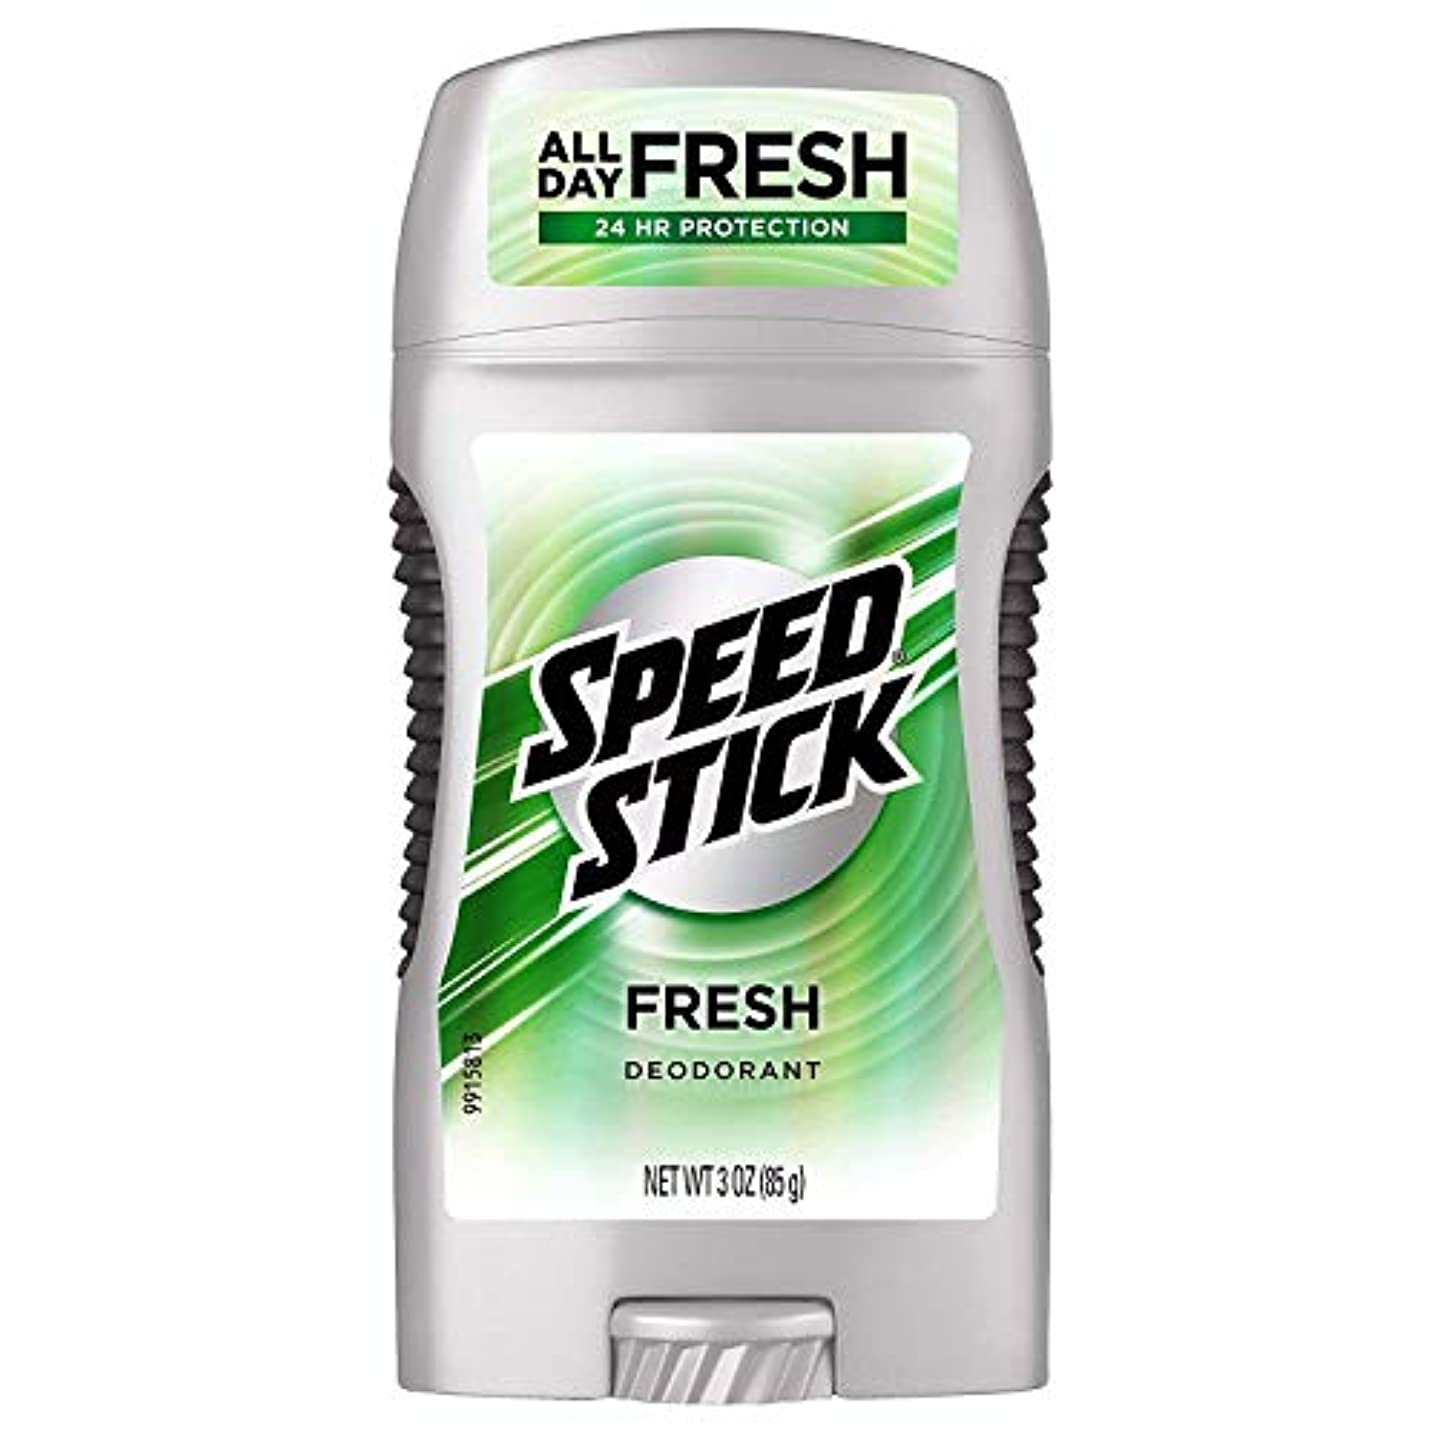 樹木デンマーク語運搬Speed Stick Deodorant, Clear, Fresh, 3 oz, (Case of 6) by Mennen [並行輸入品]